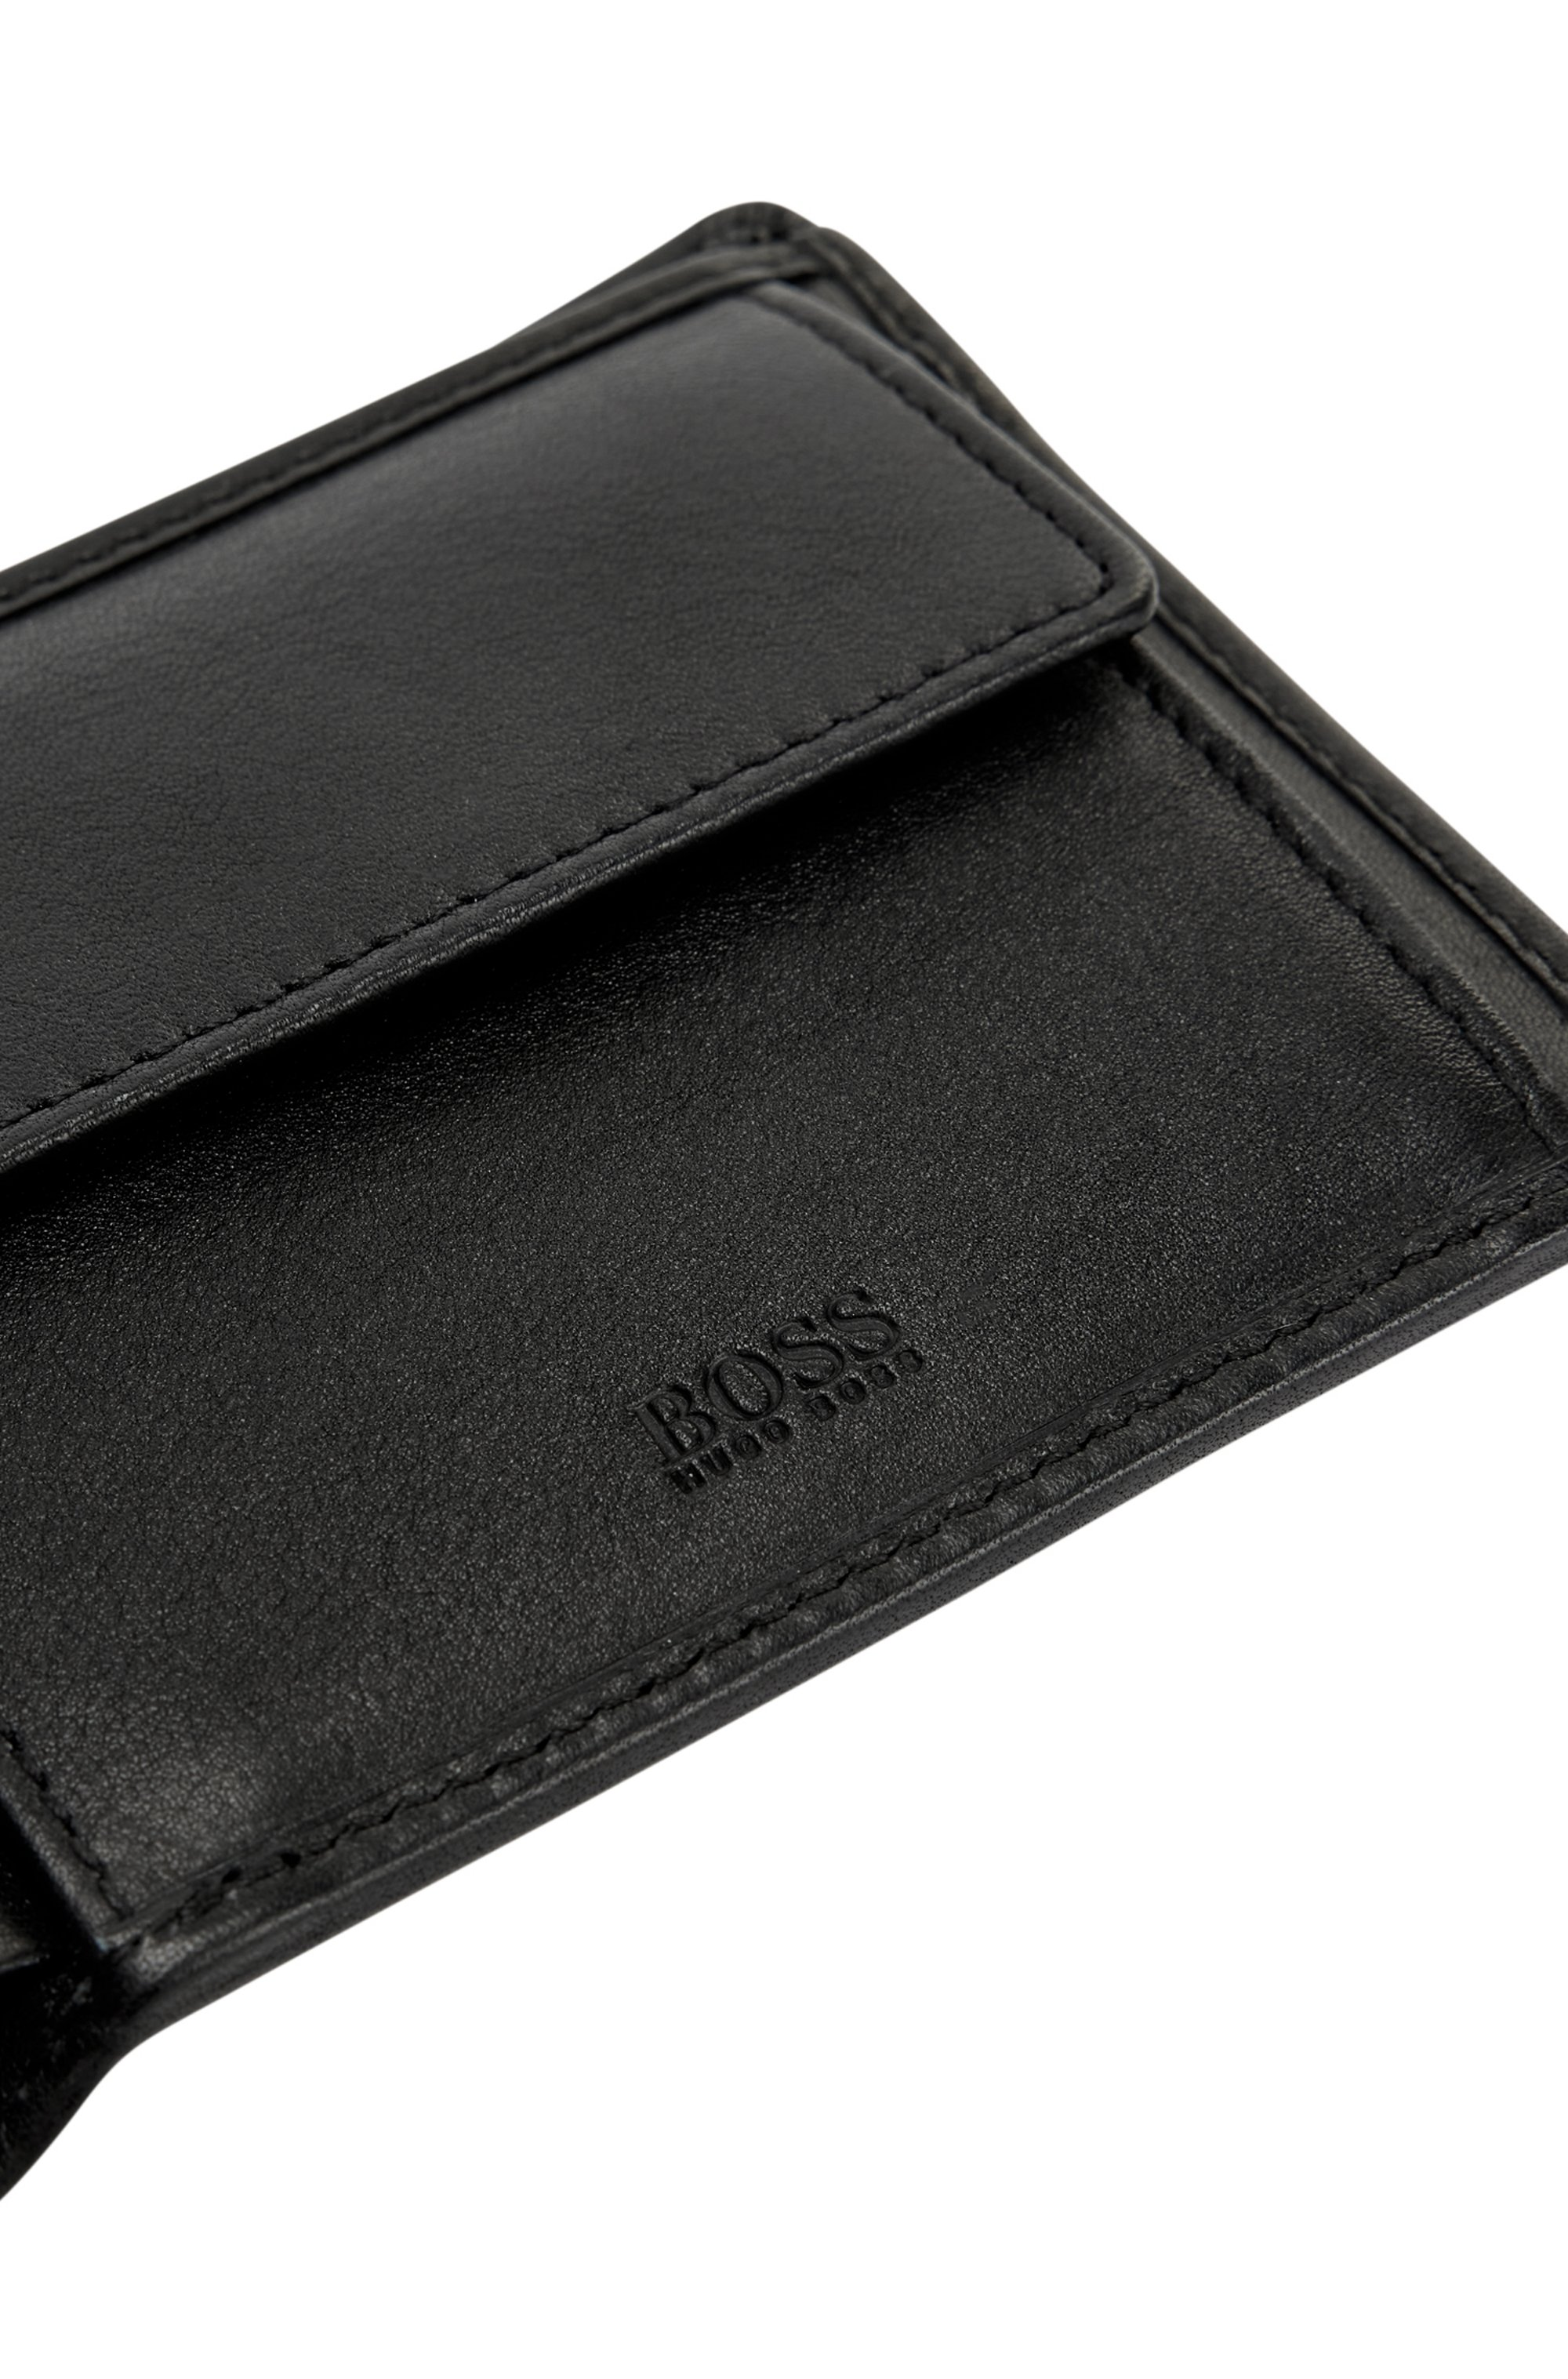 Trifold wallet in nappa leather with ID window